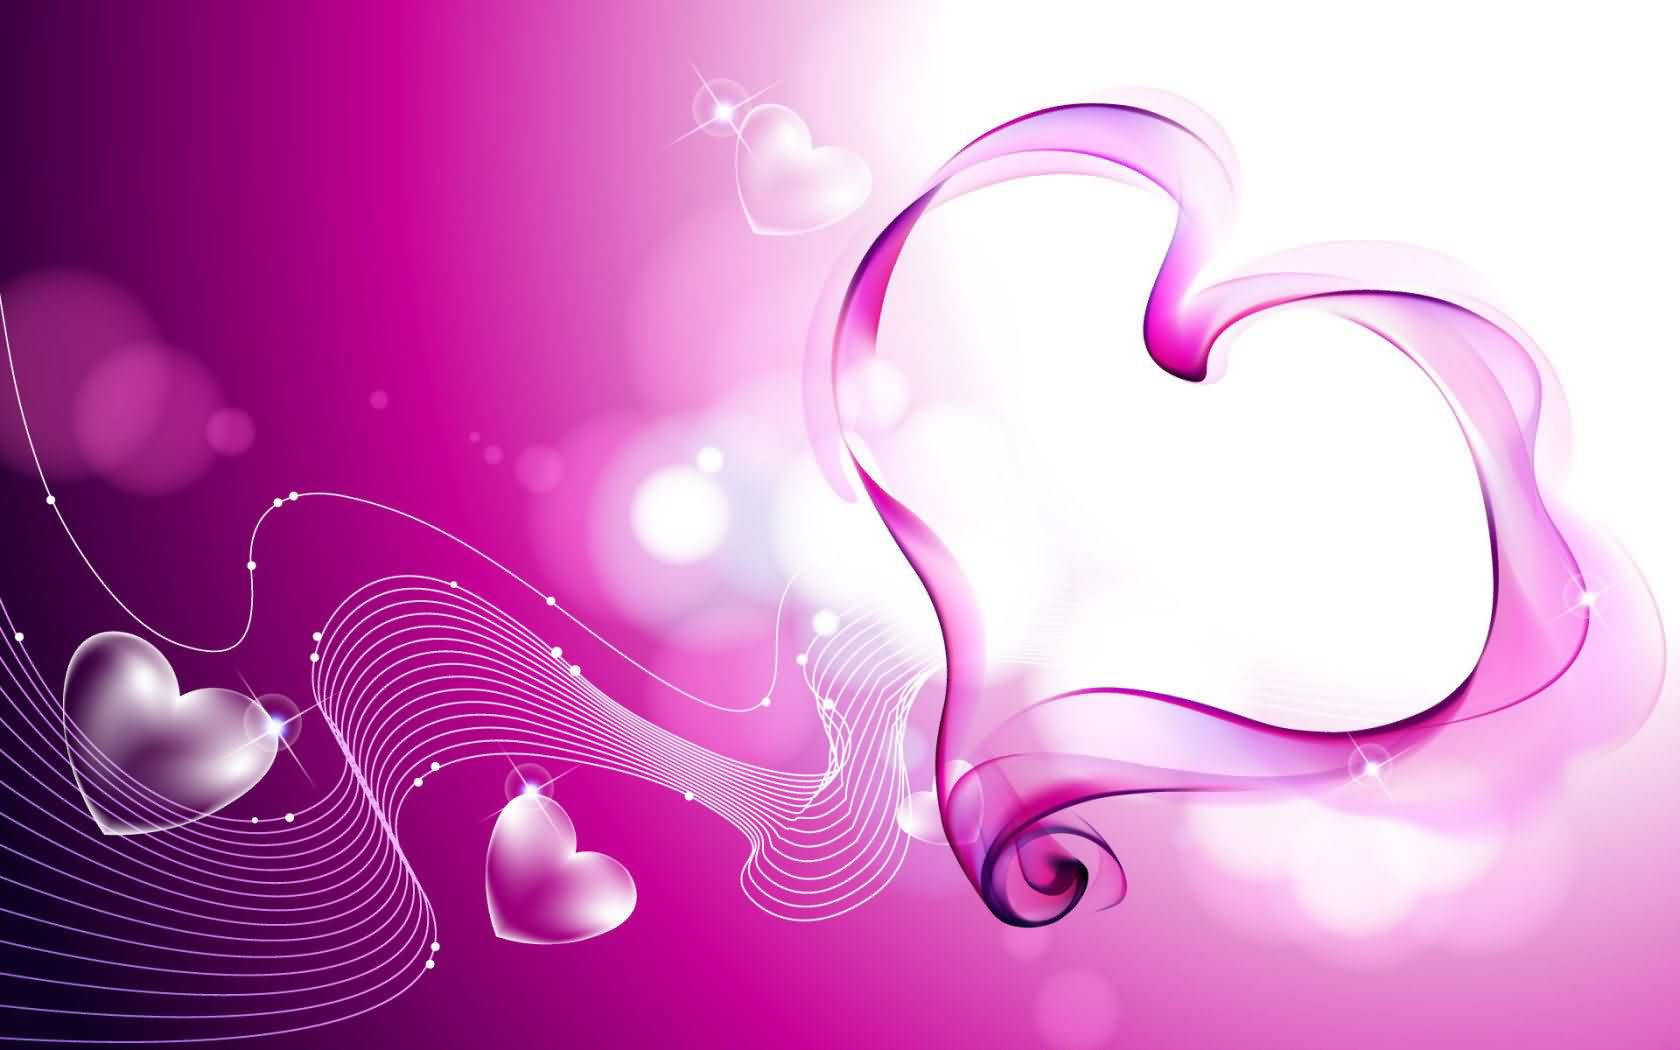 Charming Love Images